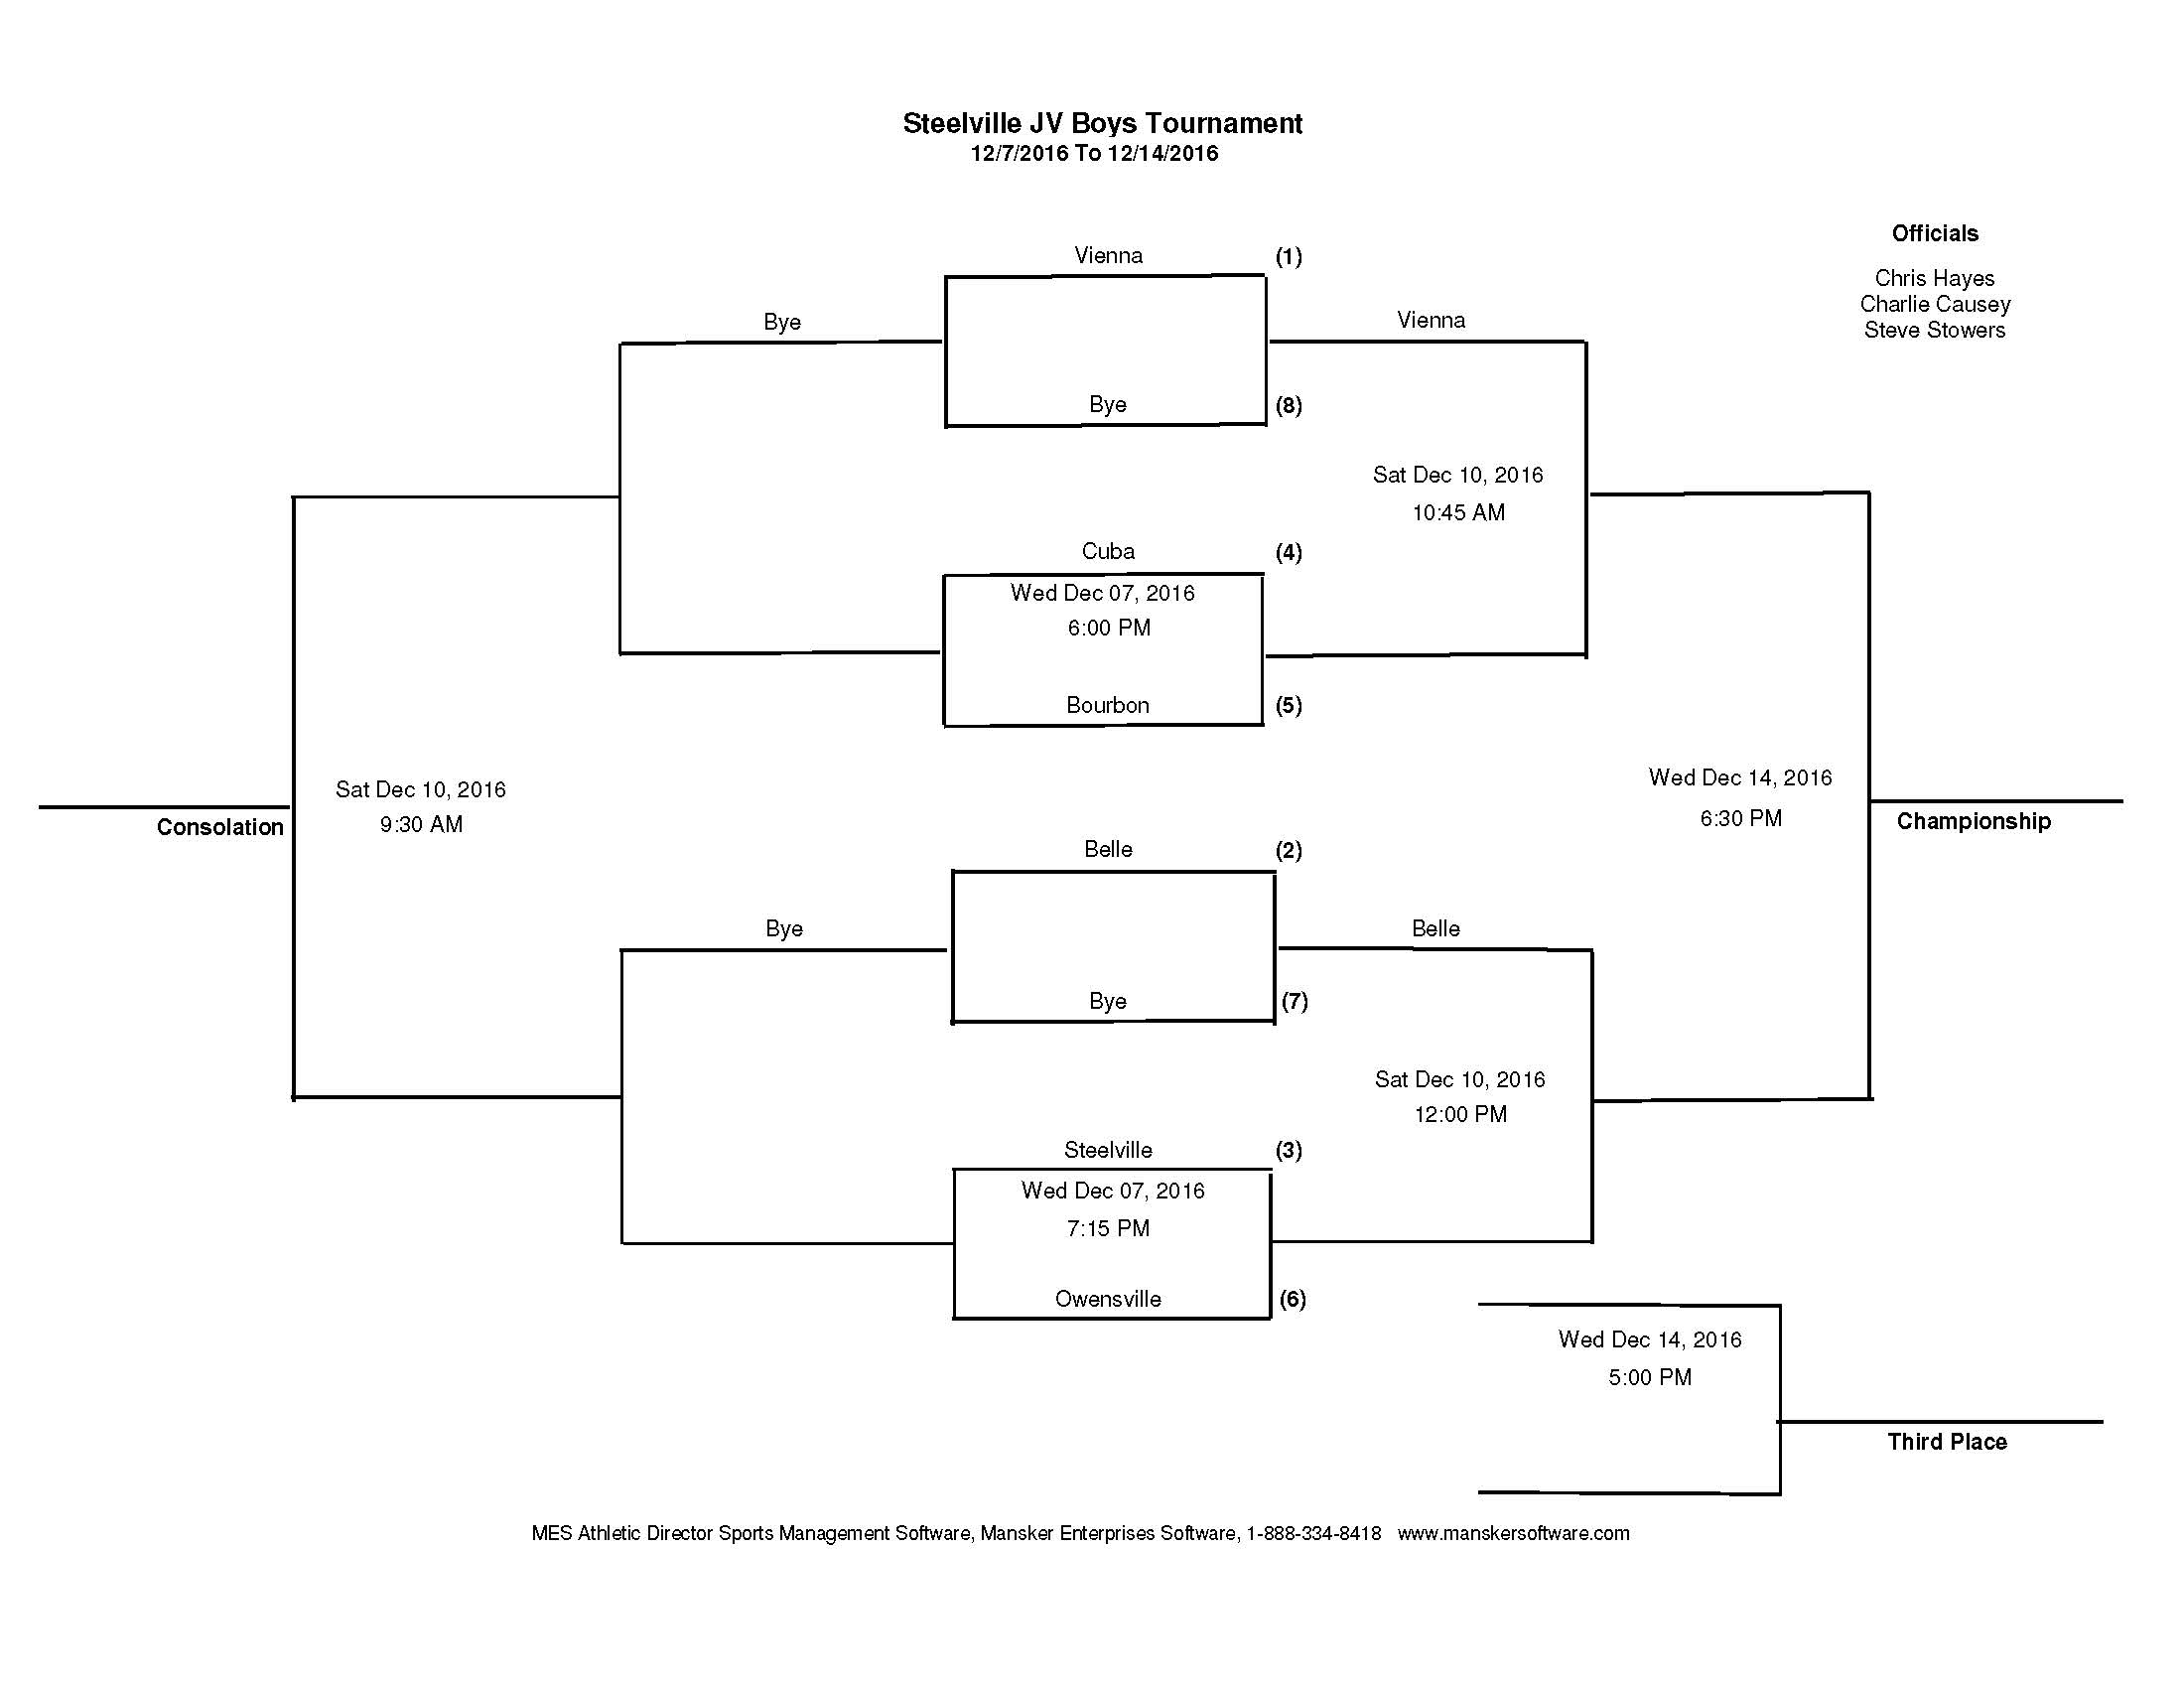 Steelville JV Boys Tournament 12/7/16 - 12/14/16